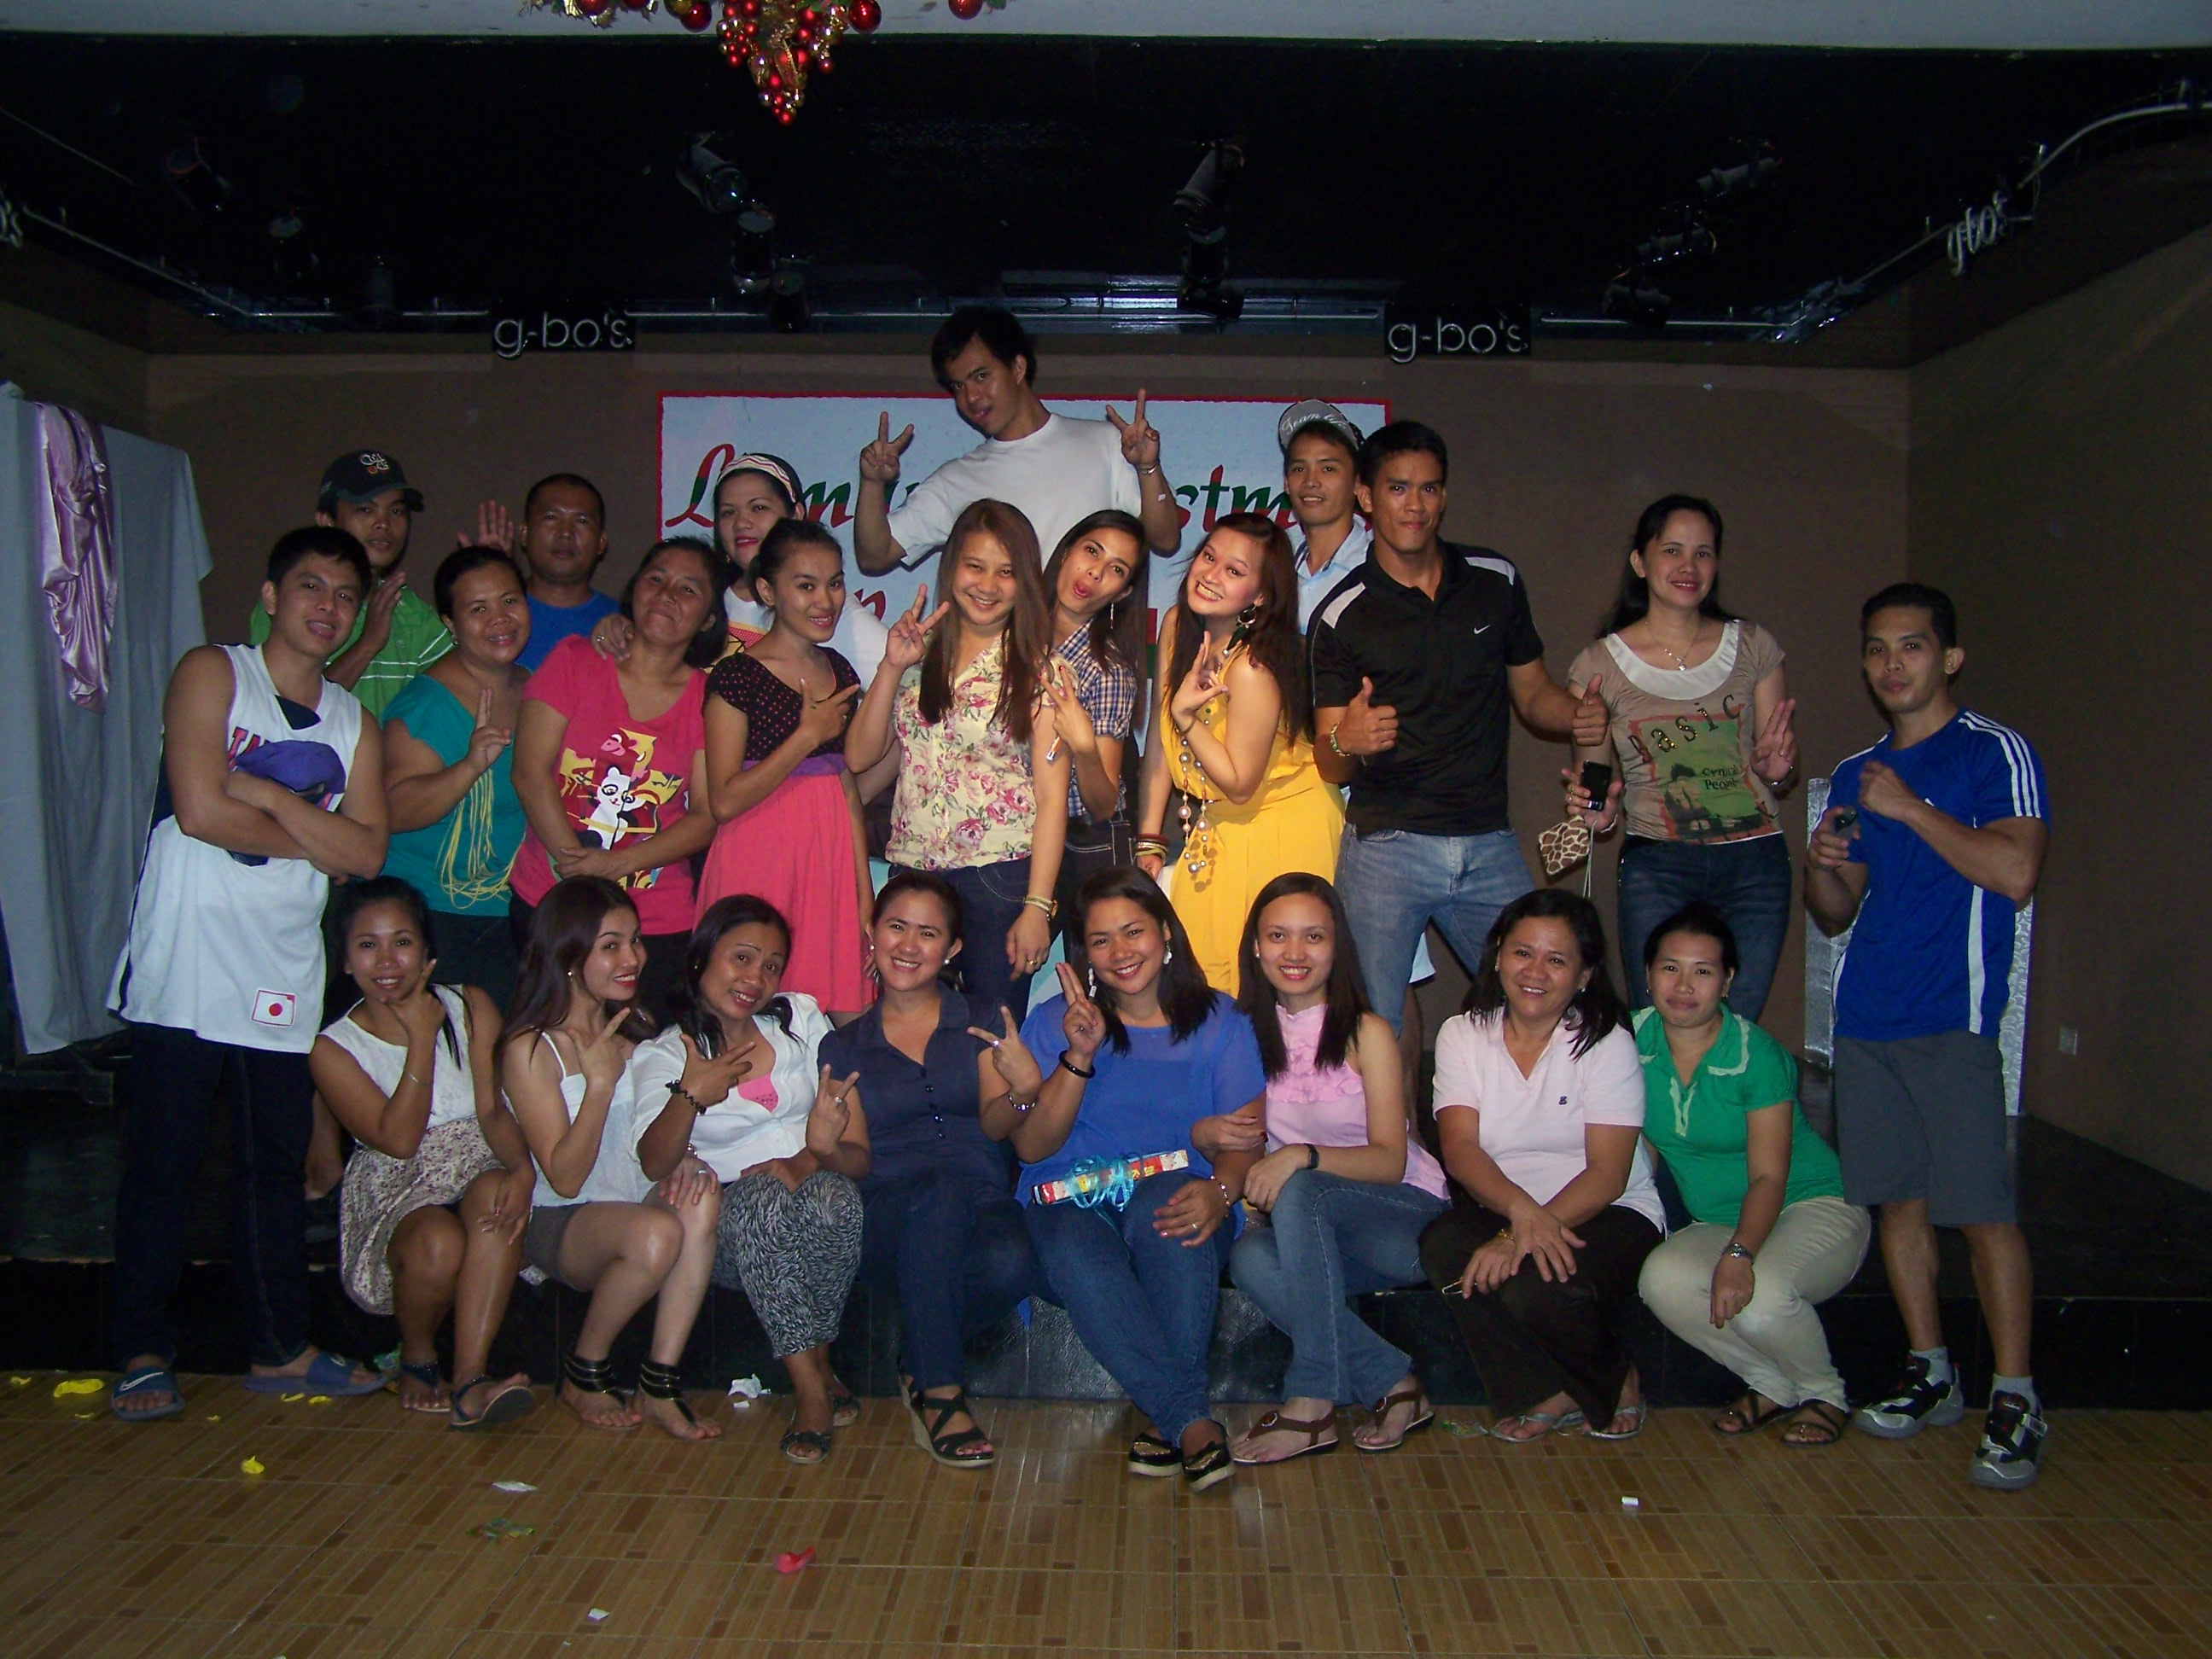 Linmarr Christmas Party Dec. 29, 2012 It's more fun in the Philippines!